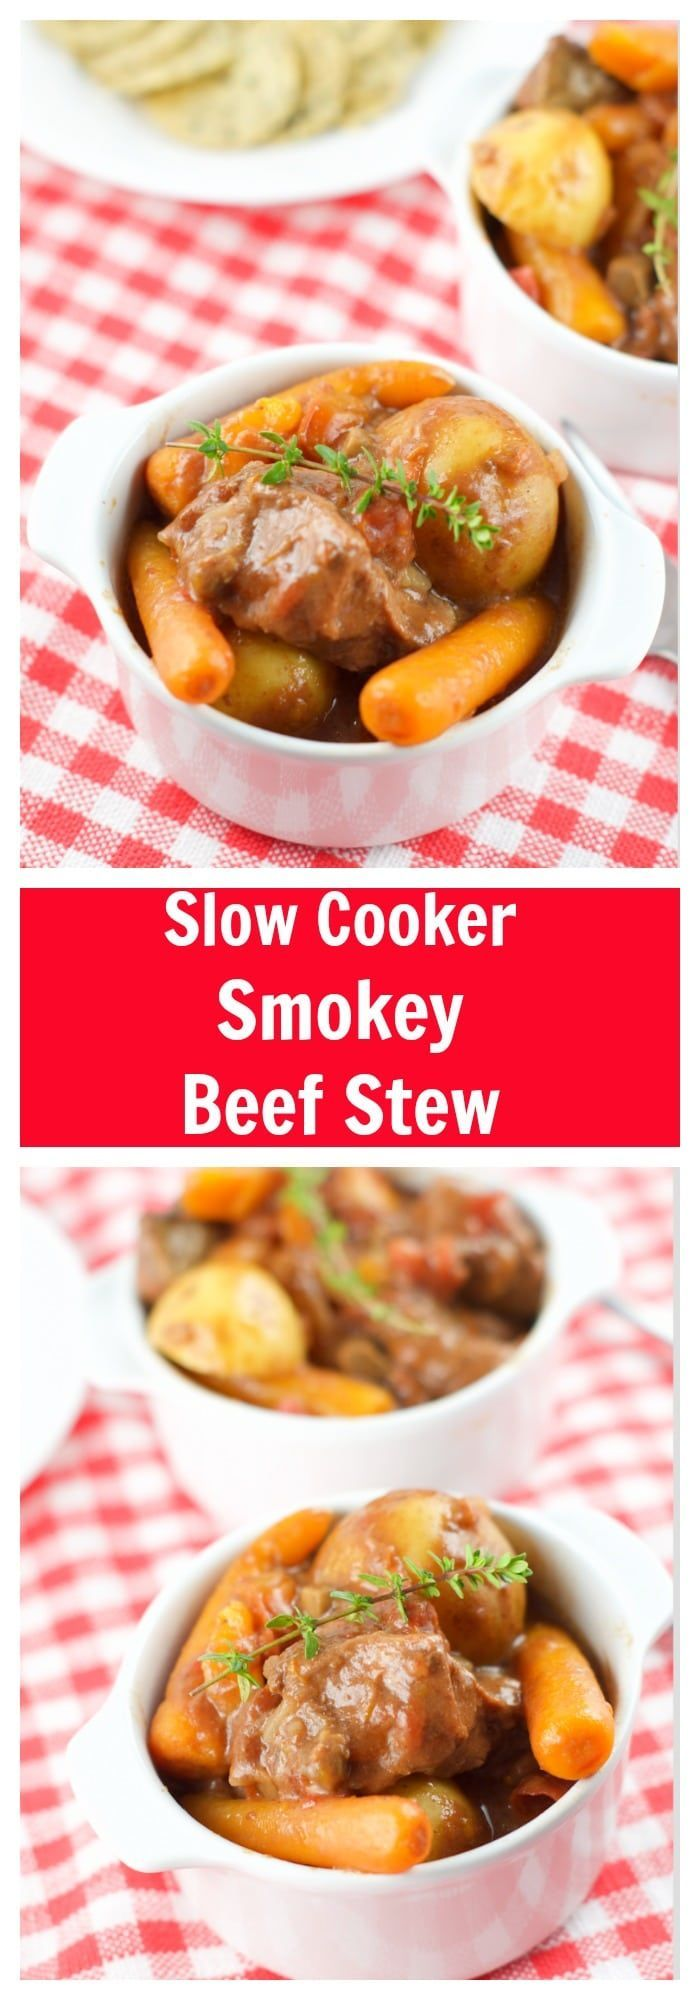 This easy to make Slow Cooker Smokey Beef Stew Recipe has a deep complex taste. The beef melts in your mouth! This is the ultimate comfort food. More slow cooker recipes at livingsweetmoments.com  via @Livingsmoments